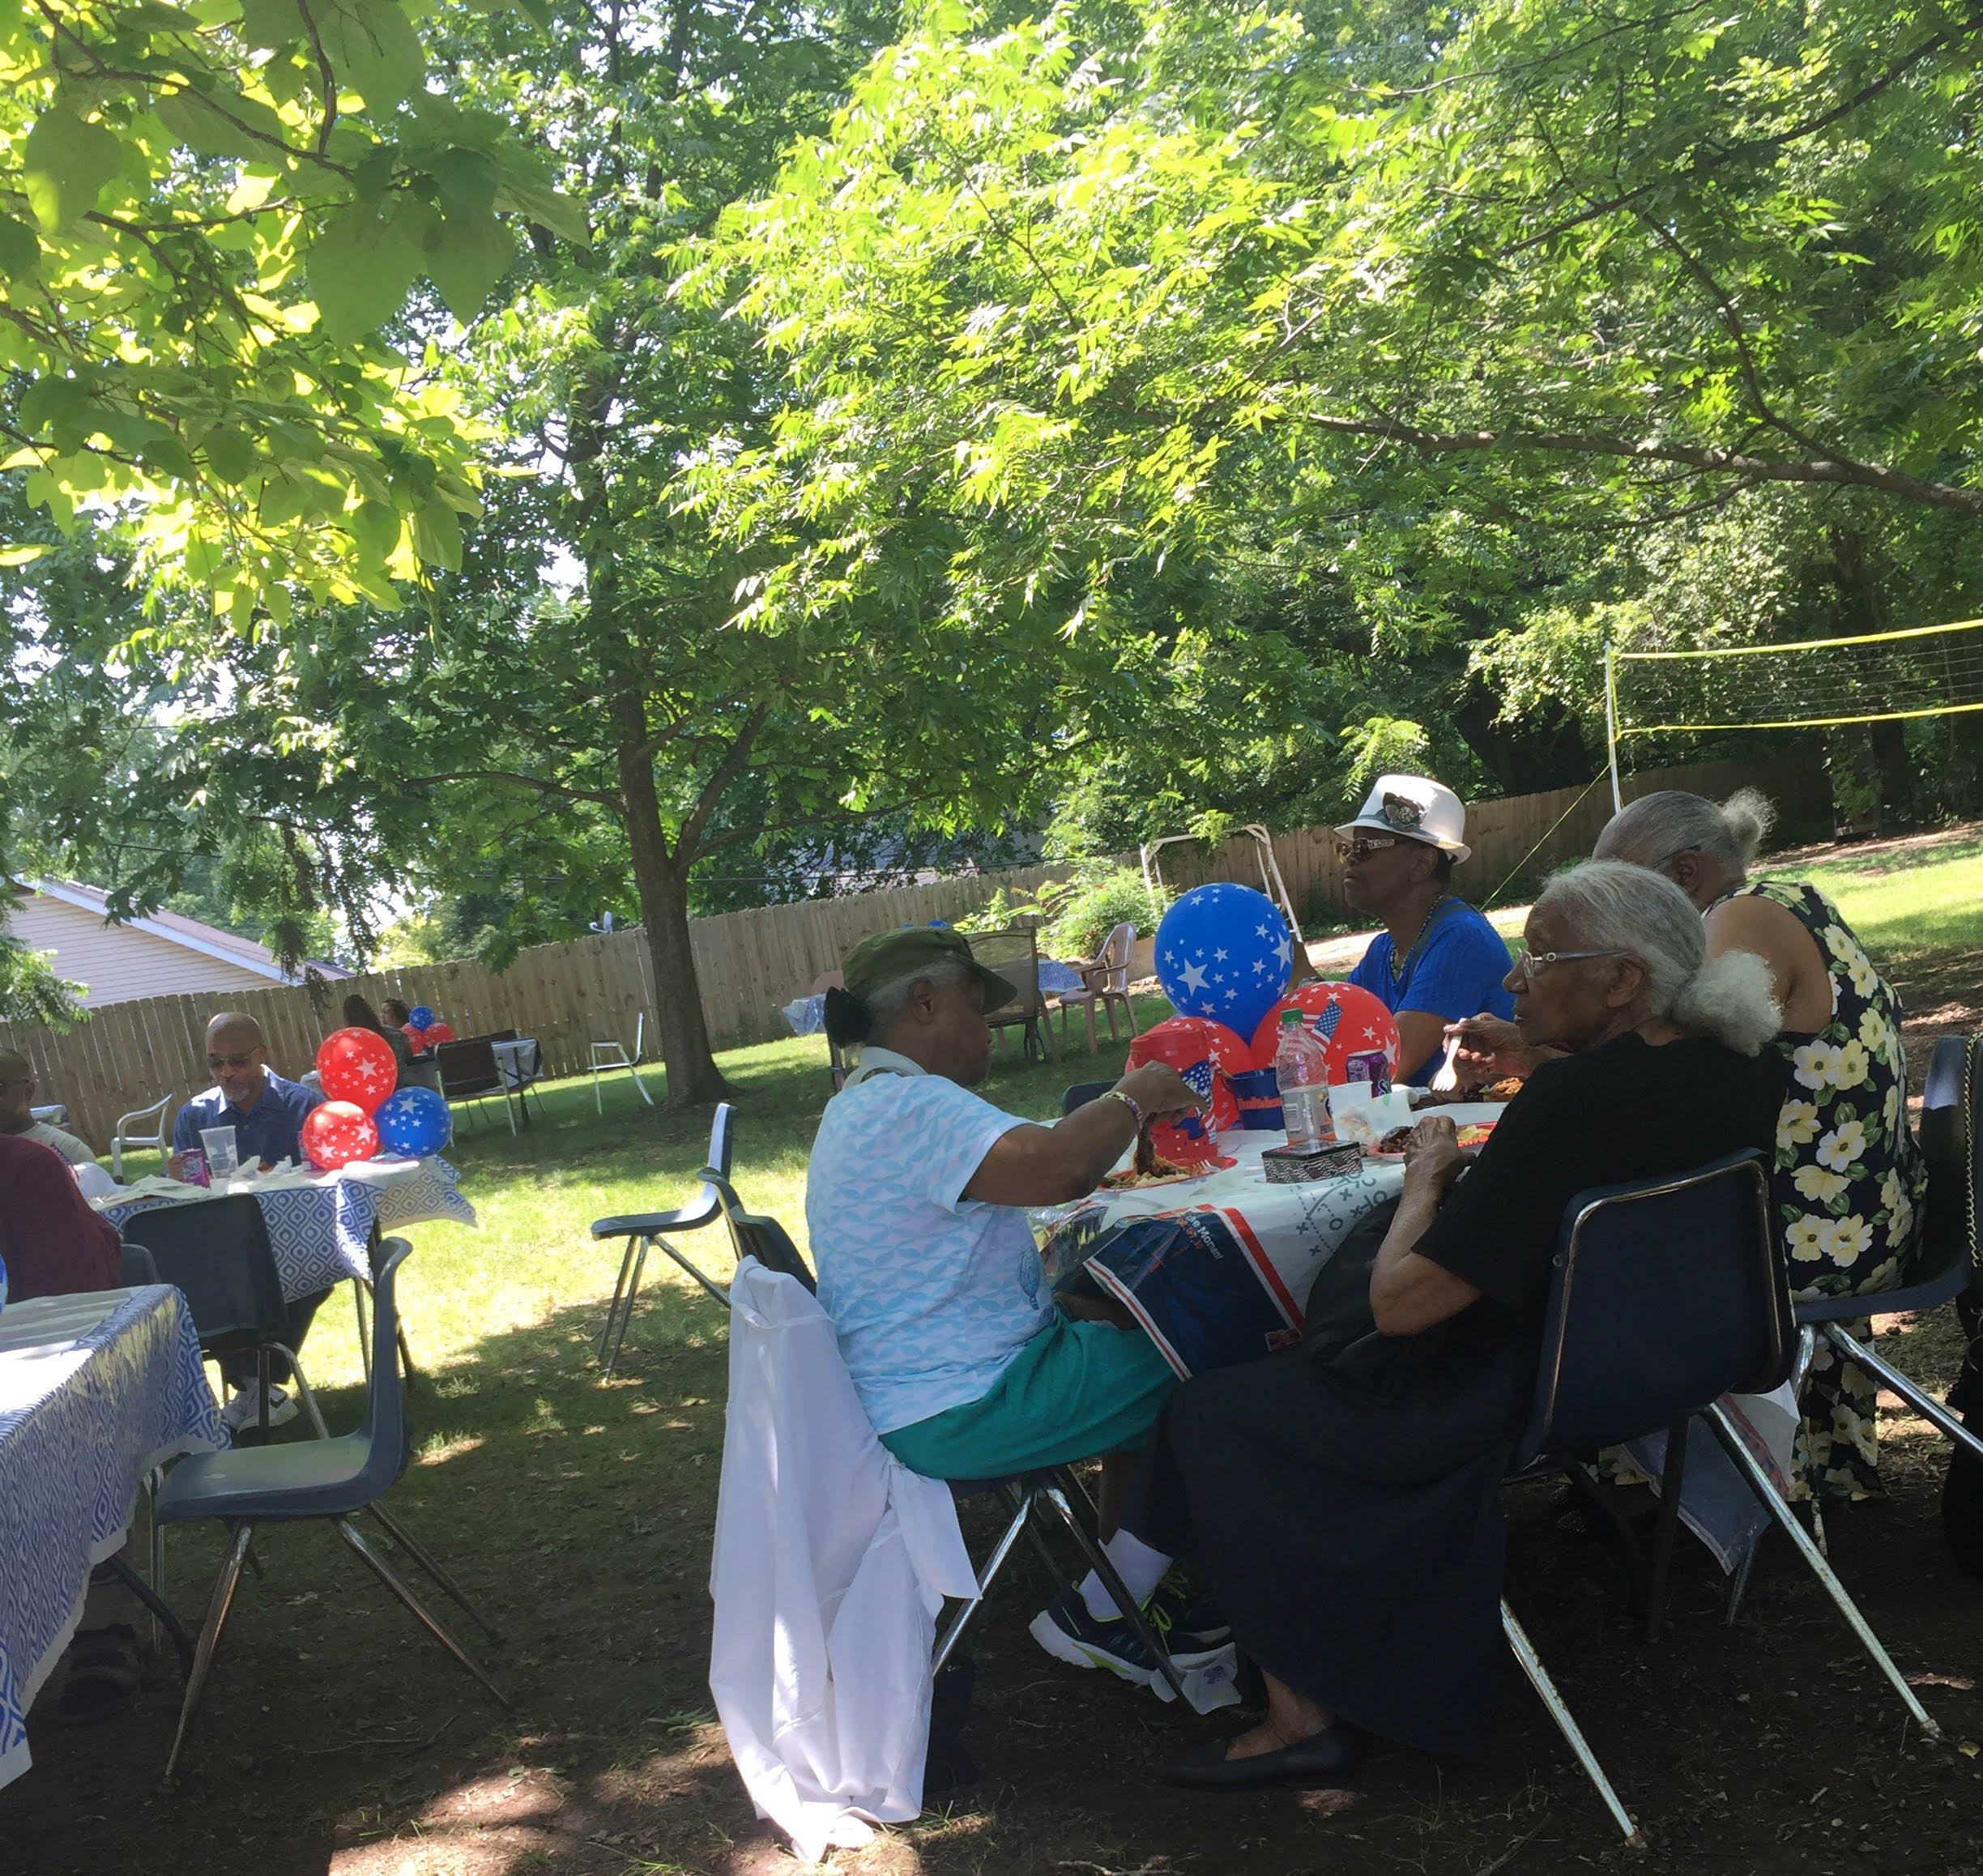 Longtime neighbor and Front Porch Alliance supporter, Mrs. Martha Tolbert, hosted a community picnic on July 1st. It was a great gathering, and FPA was honored to be included.